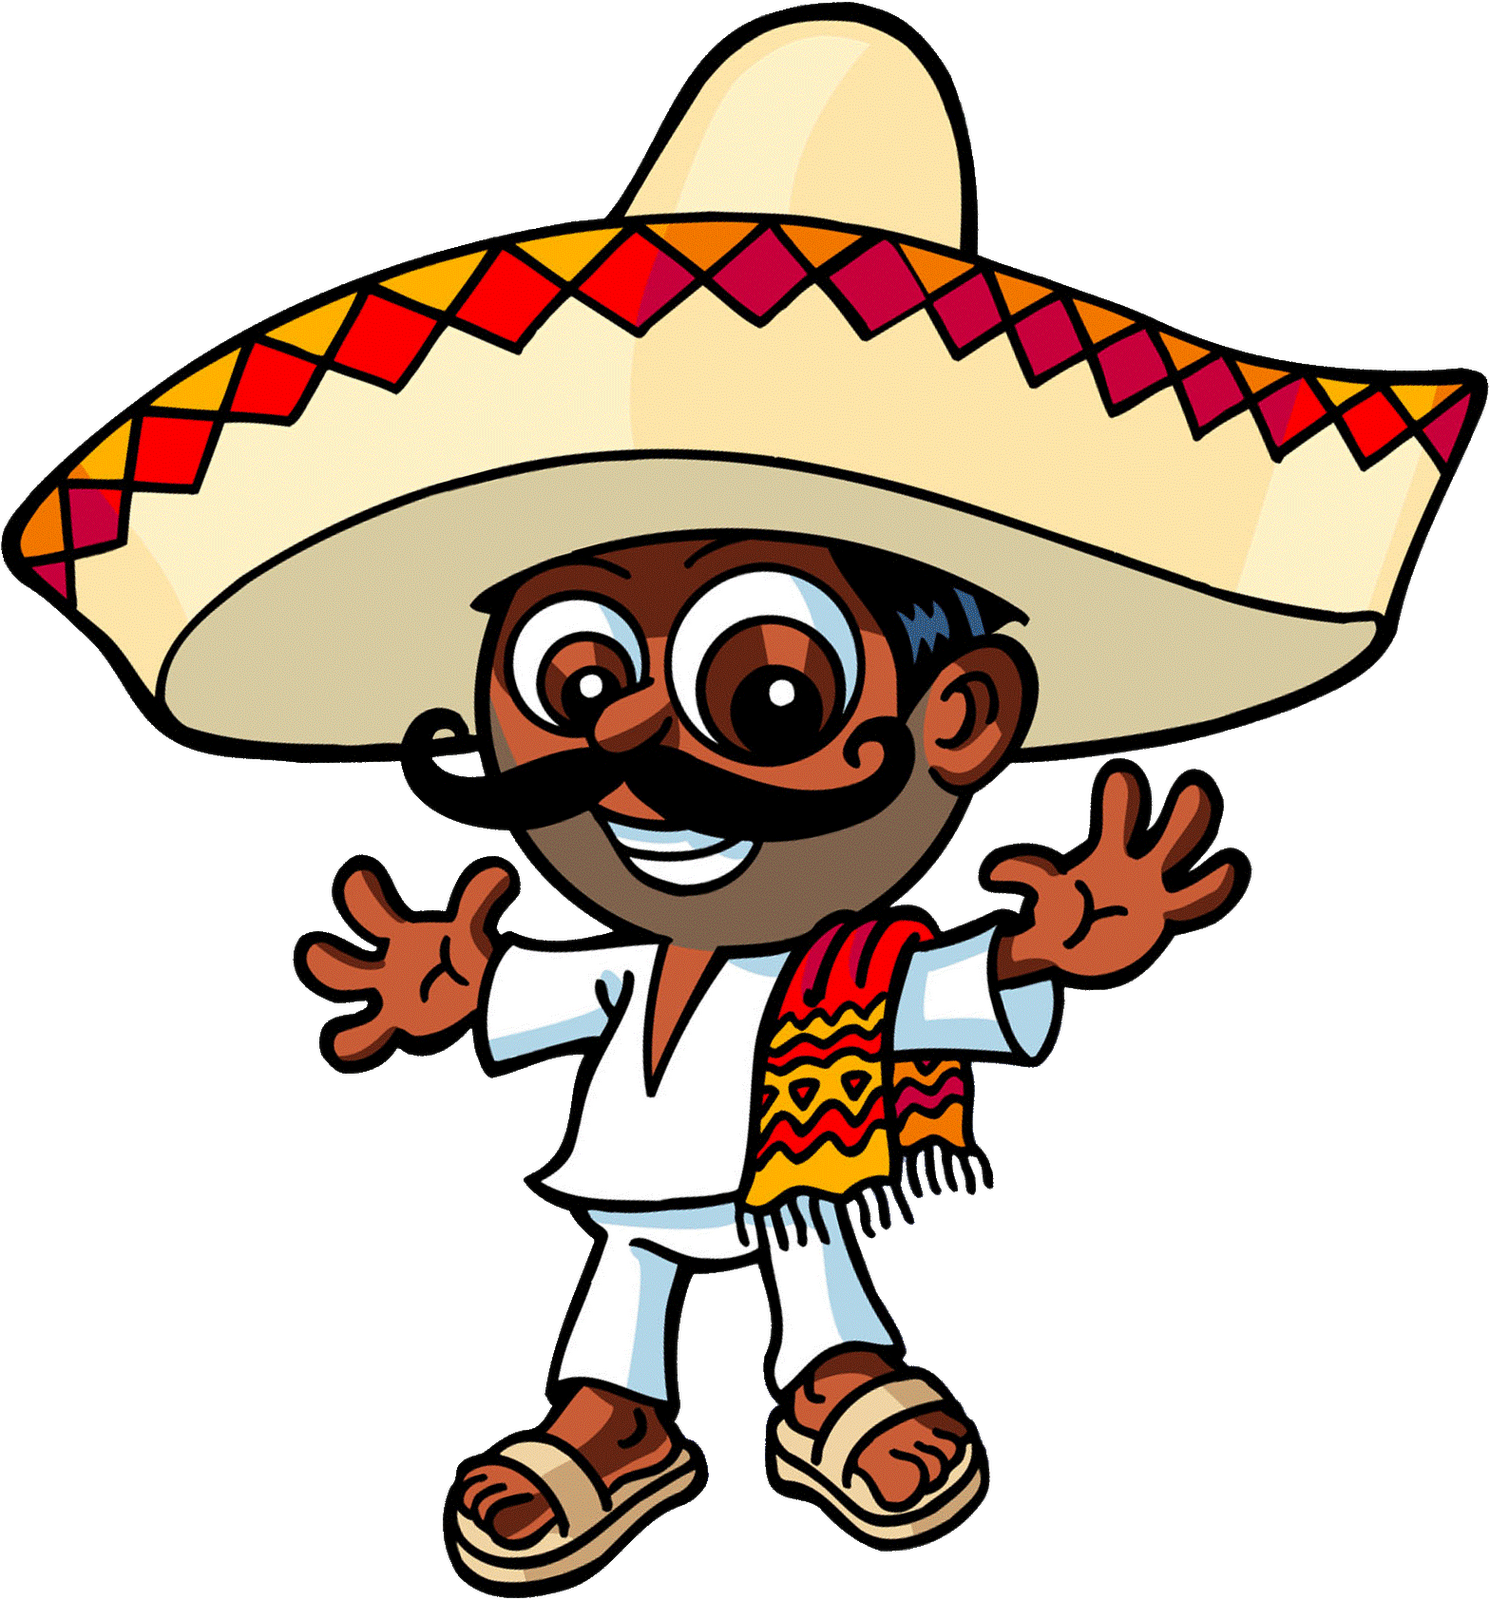 Mexican people png. Hey guys here to